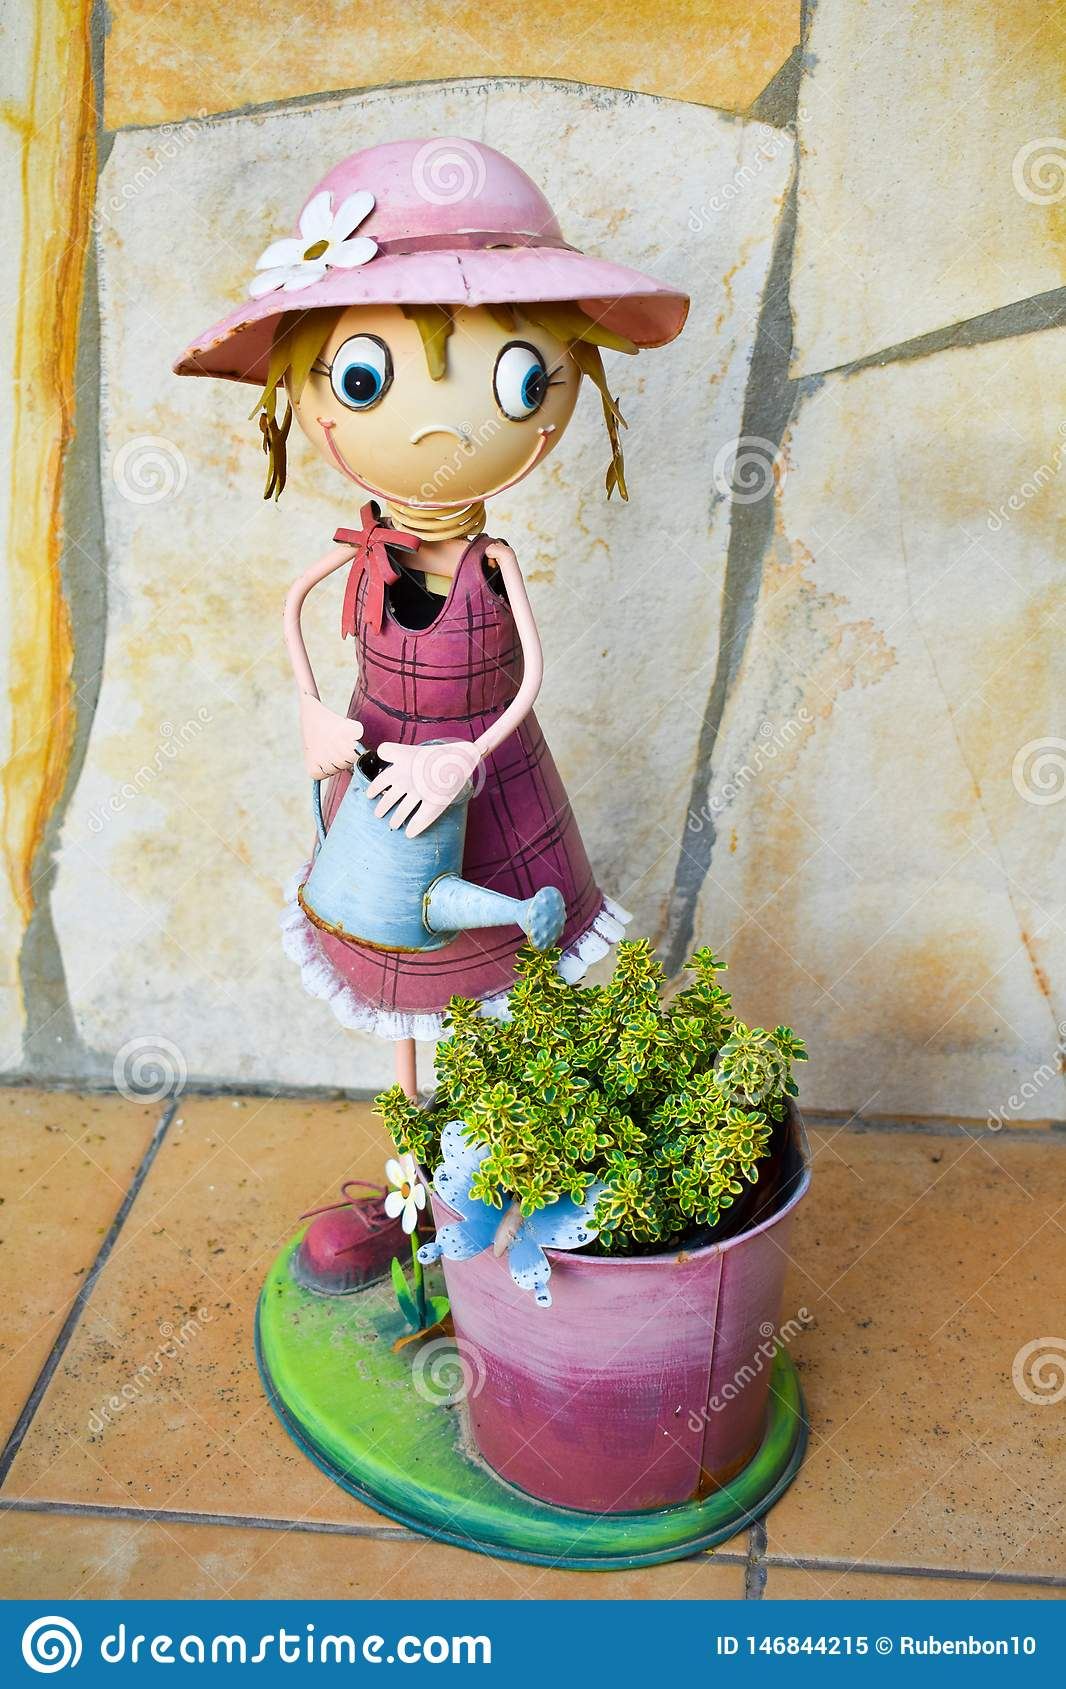 Smiling puppet made in colorful steel that shows a happy cross-eyed girl watering can a bucket with a green plant on a yellow